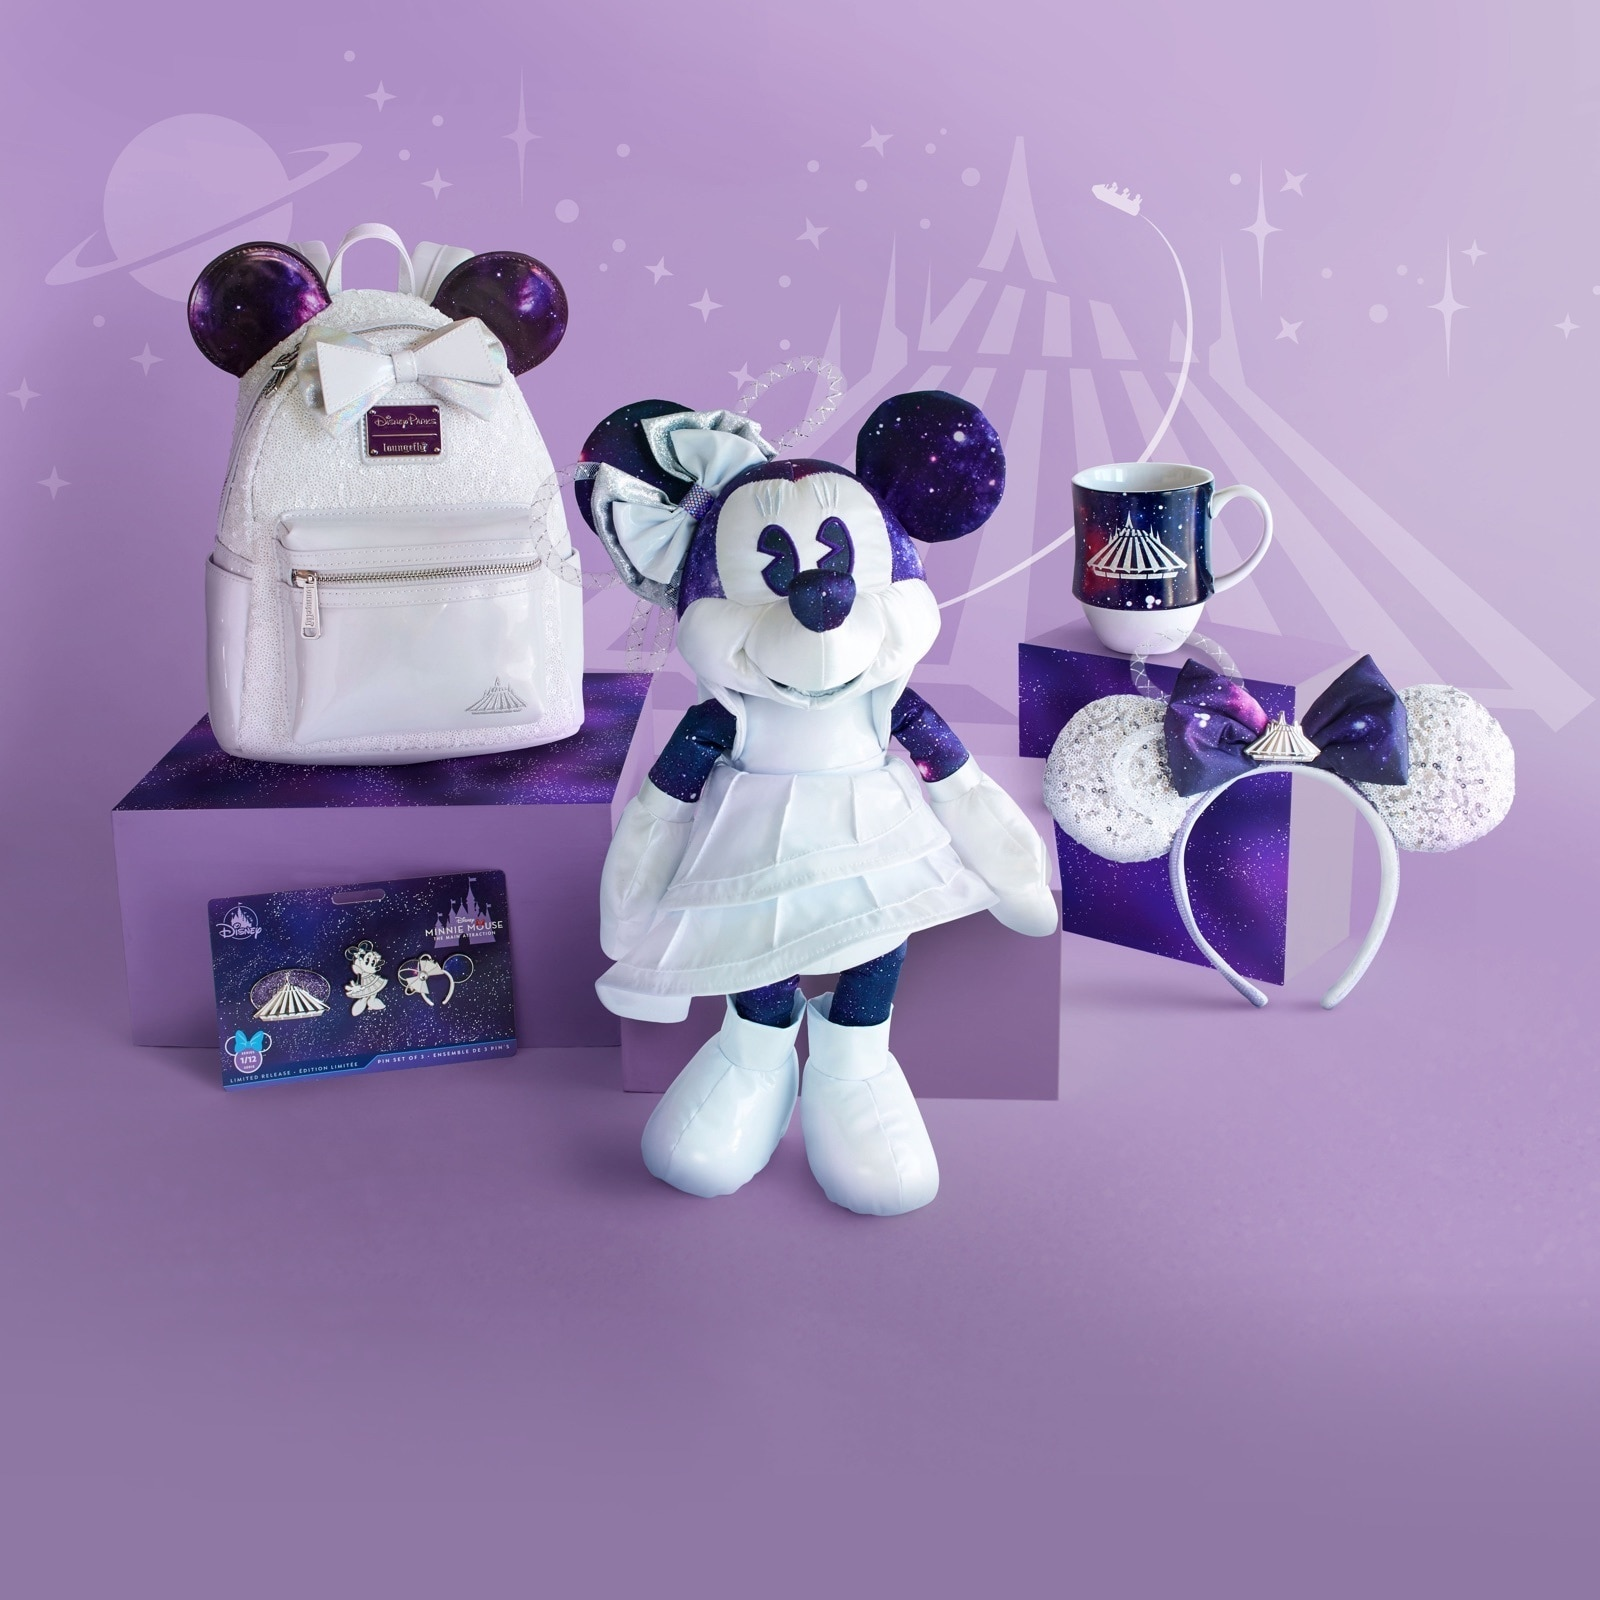 Minnie Mouse The Main Attraction January Collection